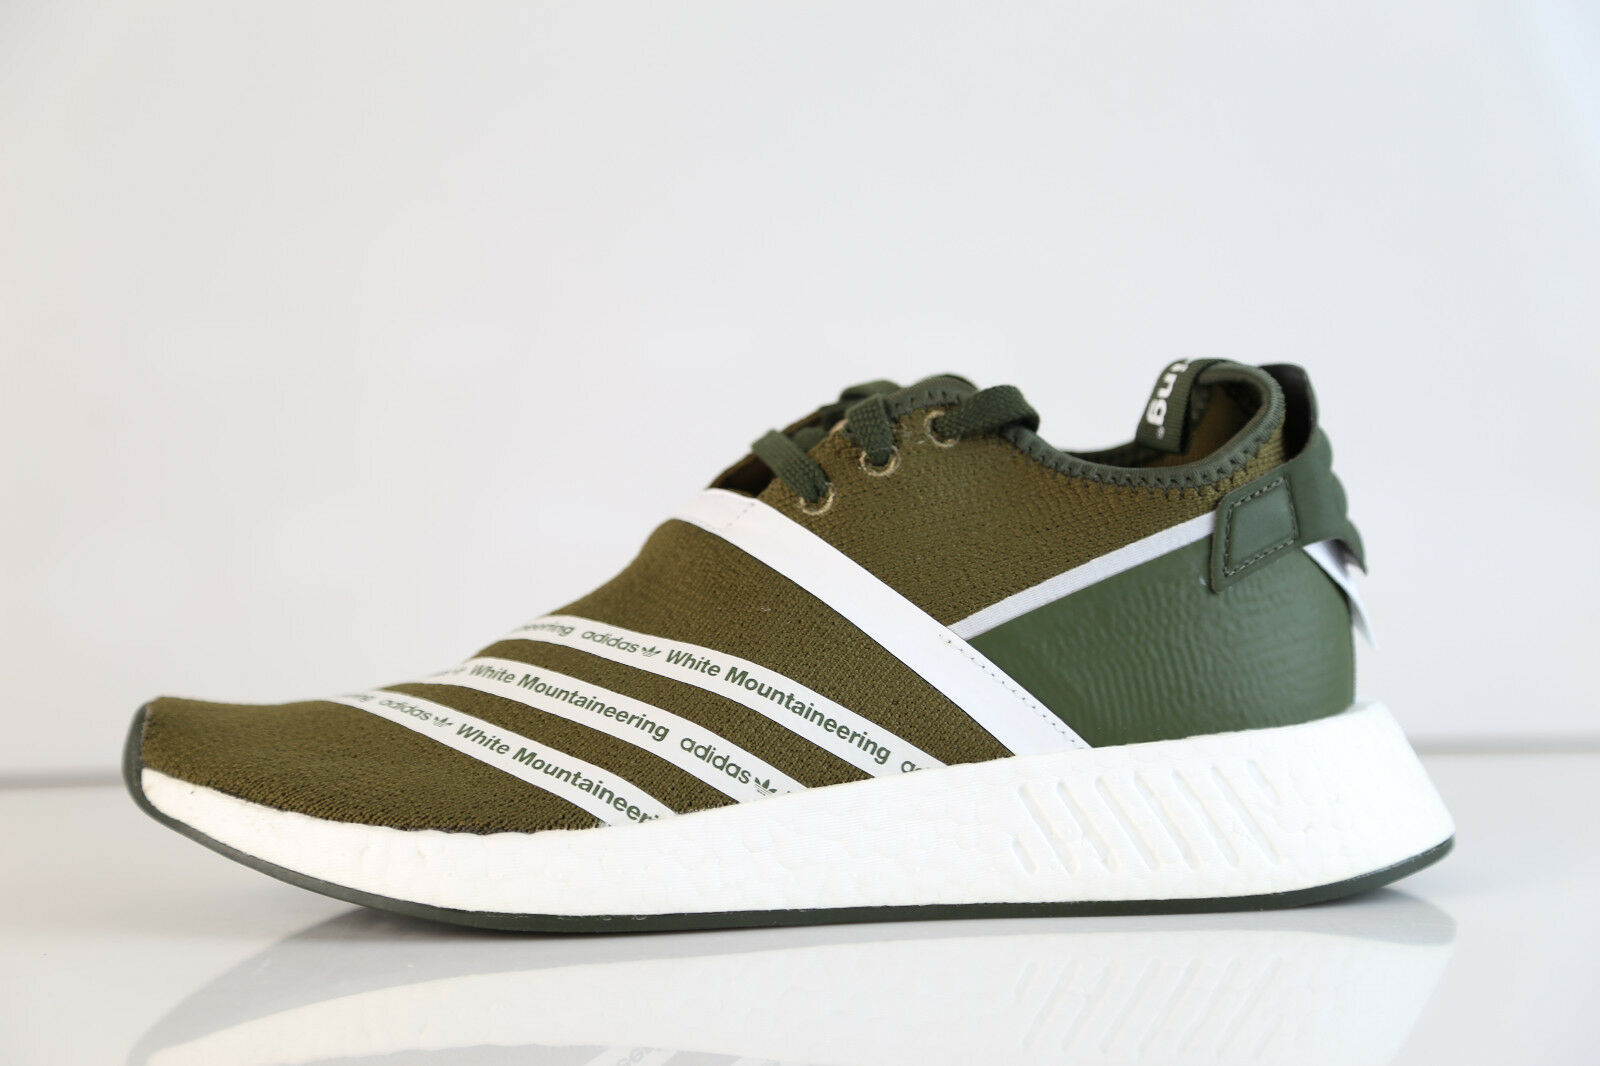 Adidas X White Mountaineering WM NMD R2 PK Boost Olive CG3649 9-11.5 rf ultra